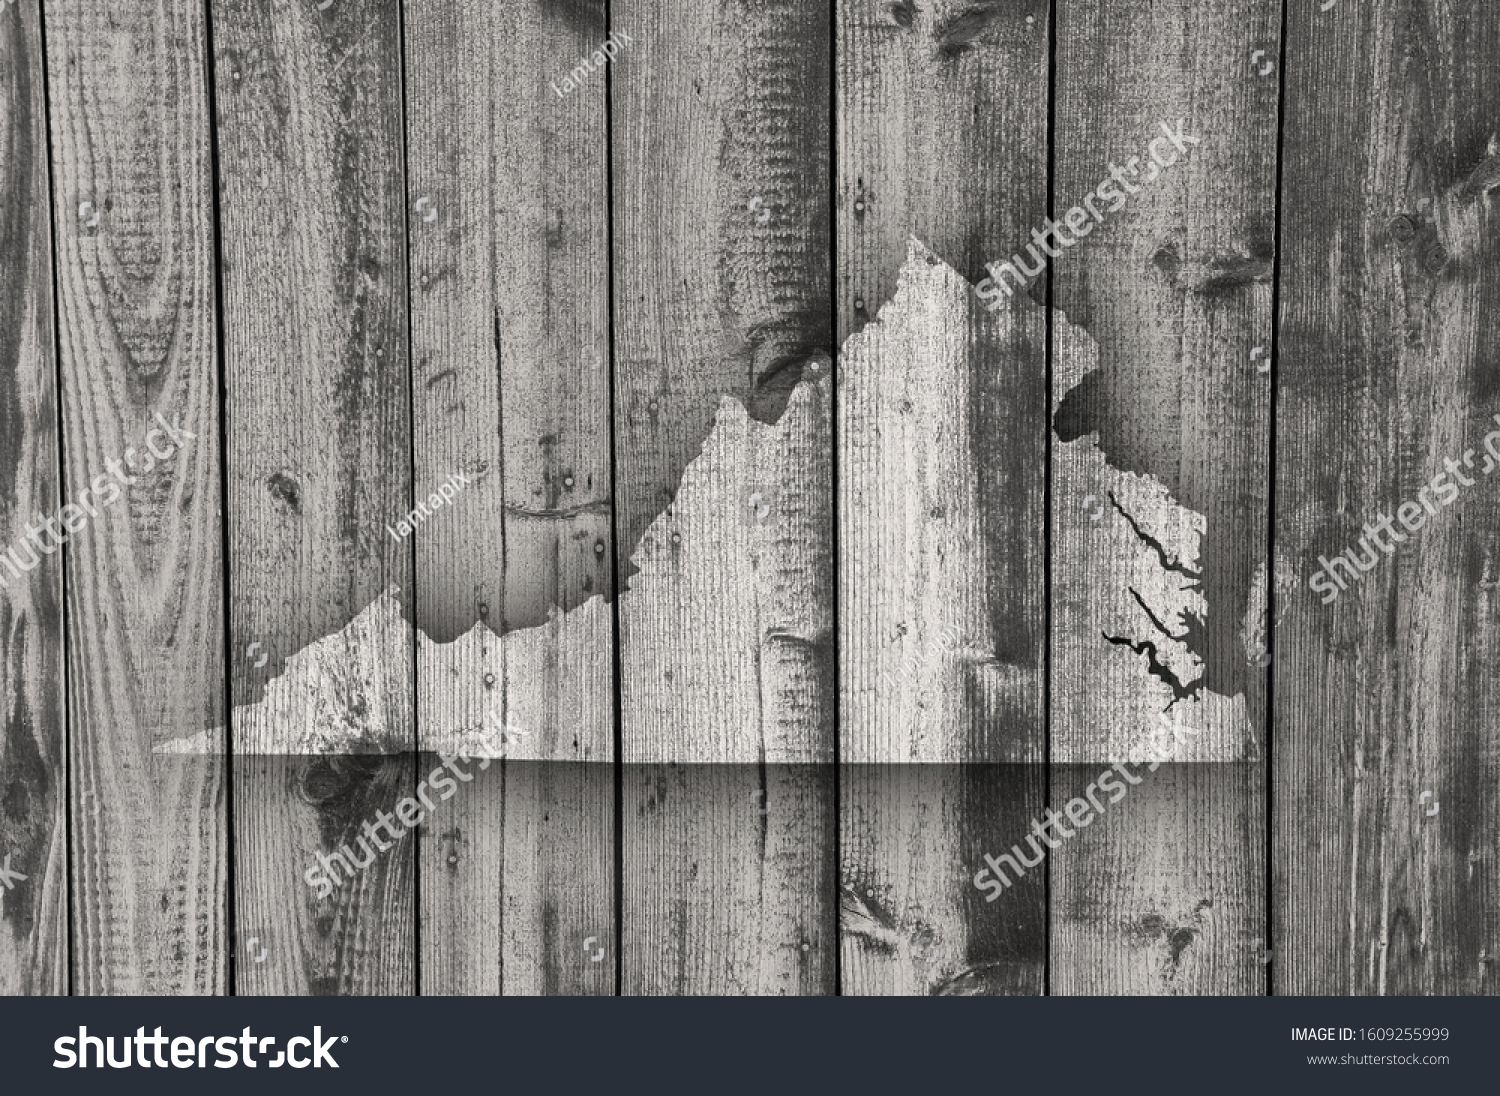 Detailed and colorful image of map of Virginia on weathered wood #1609255999